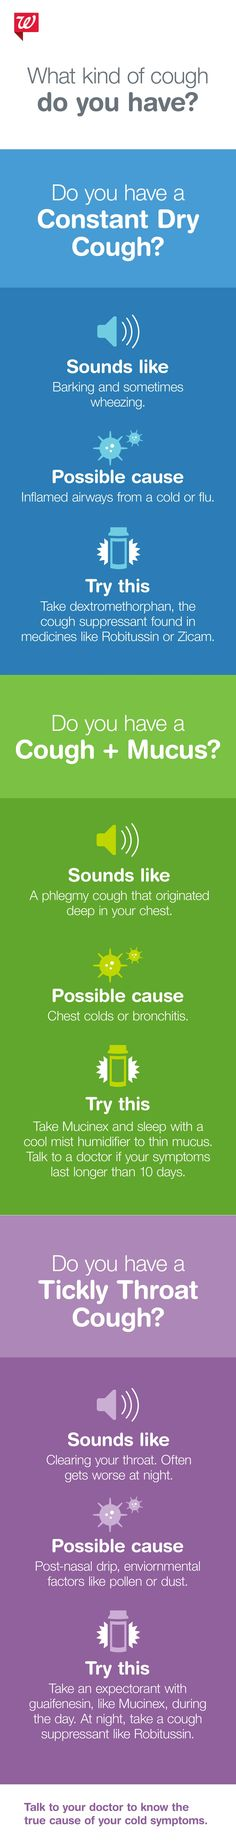 What is your cough telling you? Find relief fast.